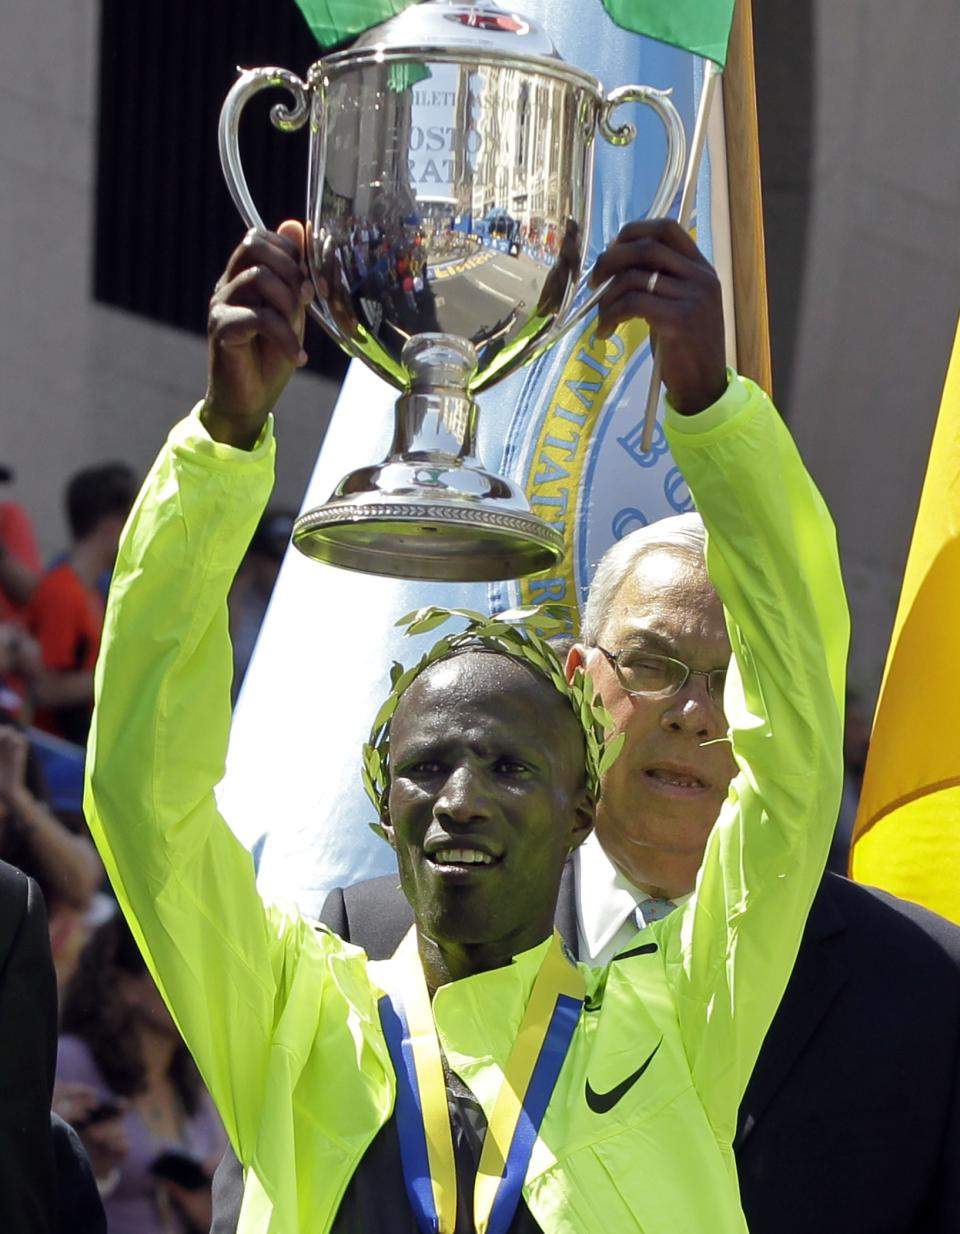 Wesley Korir of Kenya hold his trophy after winning the men's division of the 2012 Boston Marathon in Boston, Monday, April 16, 2012. (AP Photo/Elise Amendola)